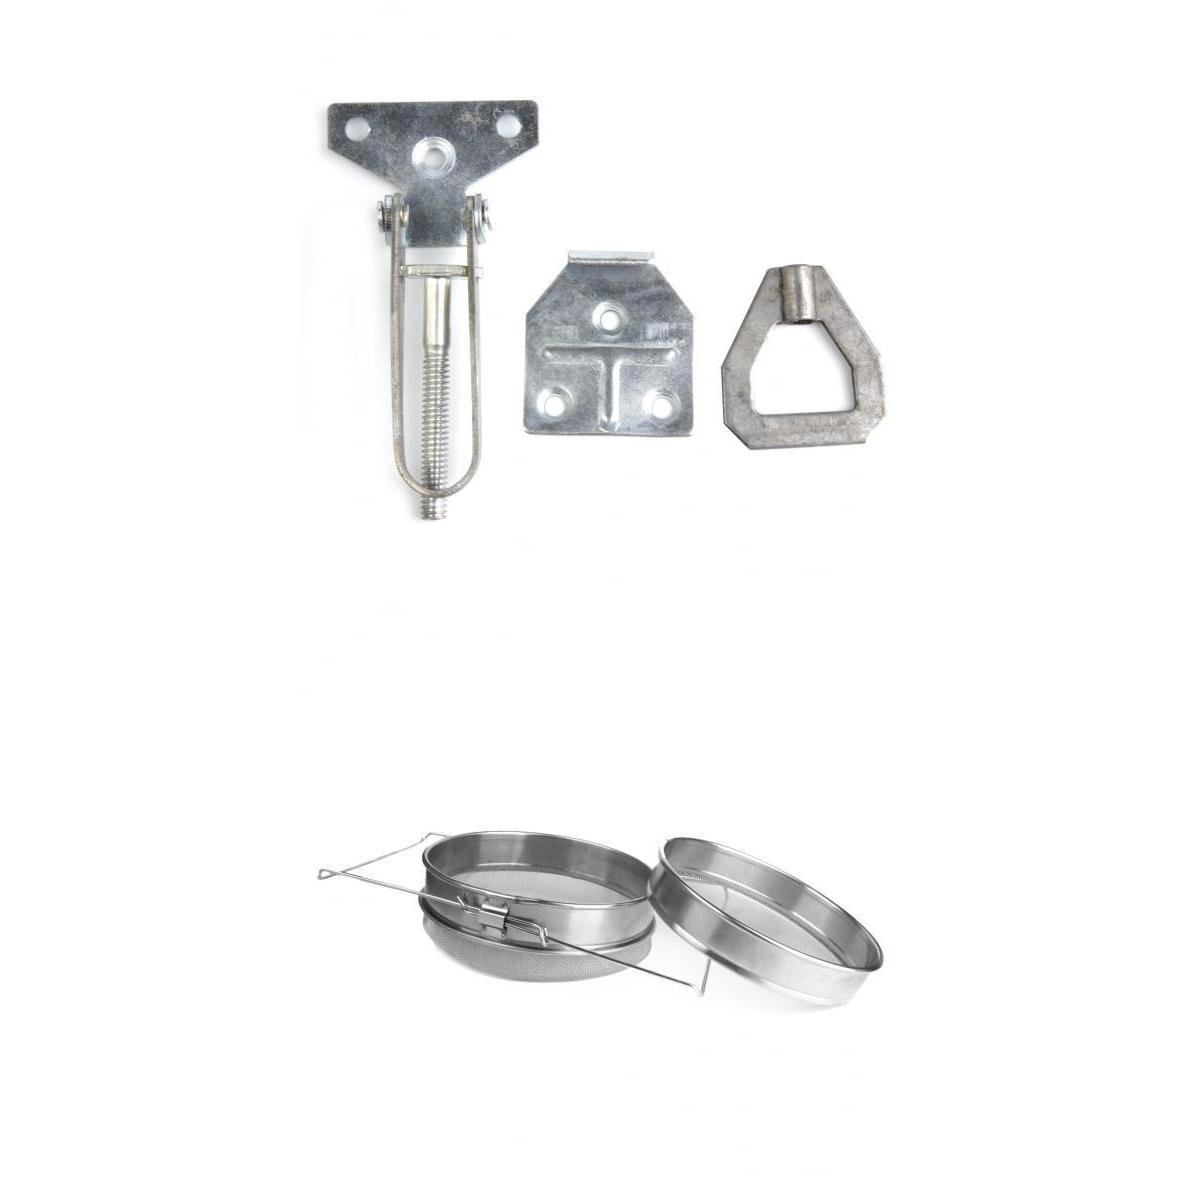 MagiDeal Beekeeping Hive Fasteners Set Package Double Honey Strainer Filter Stainless Steel Heavy Duty